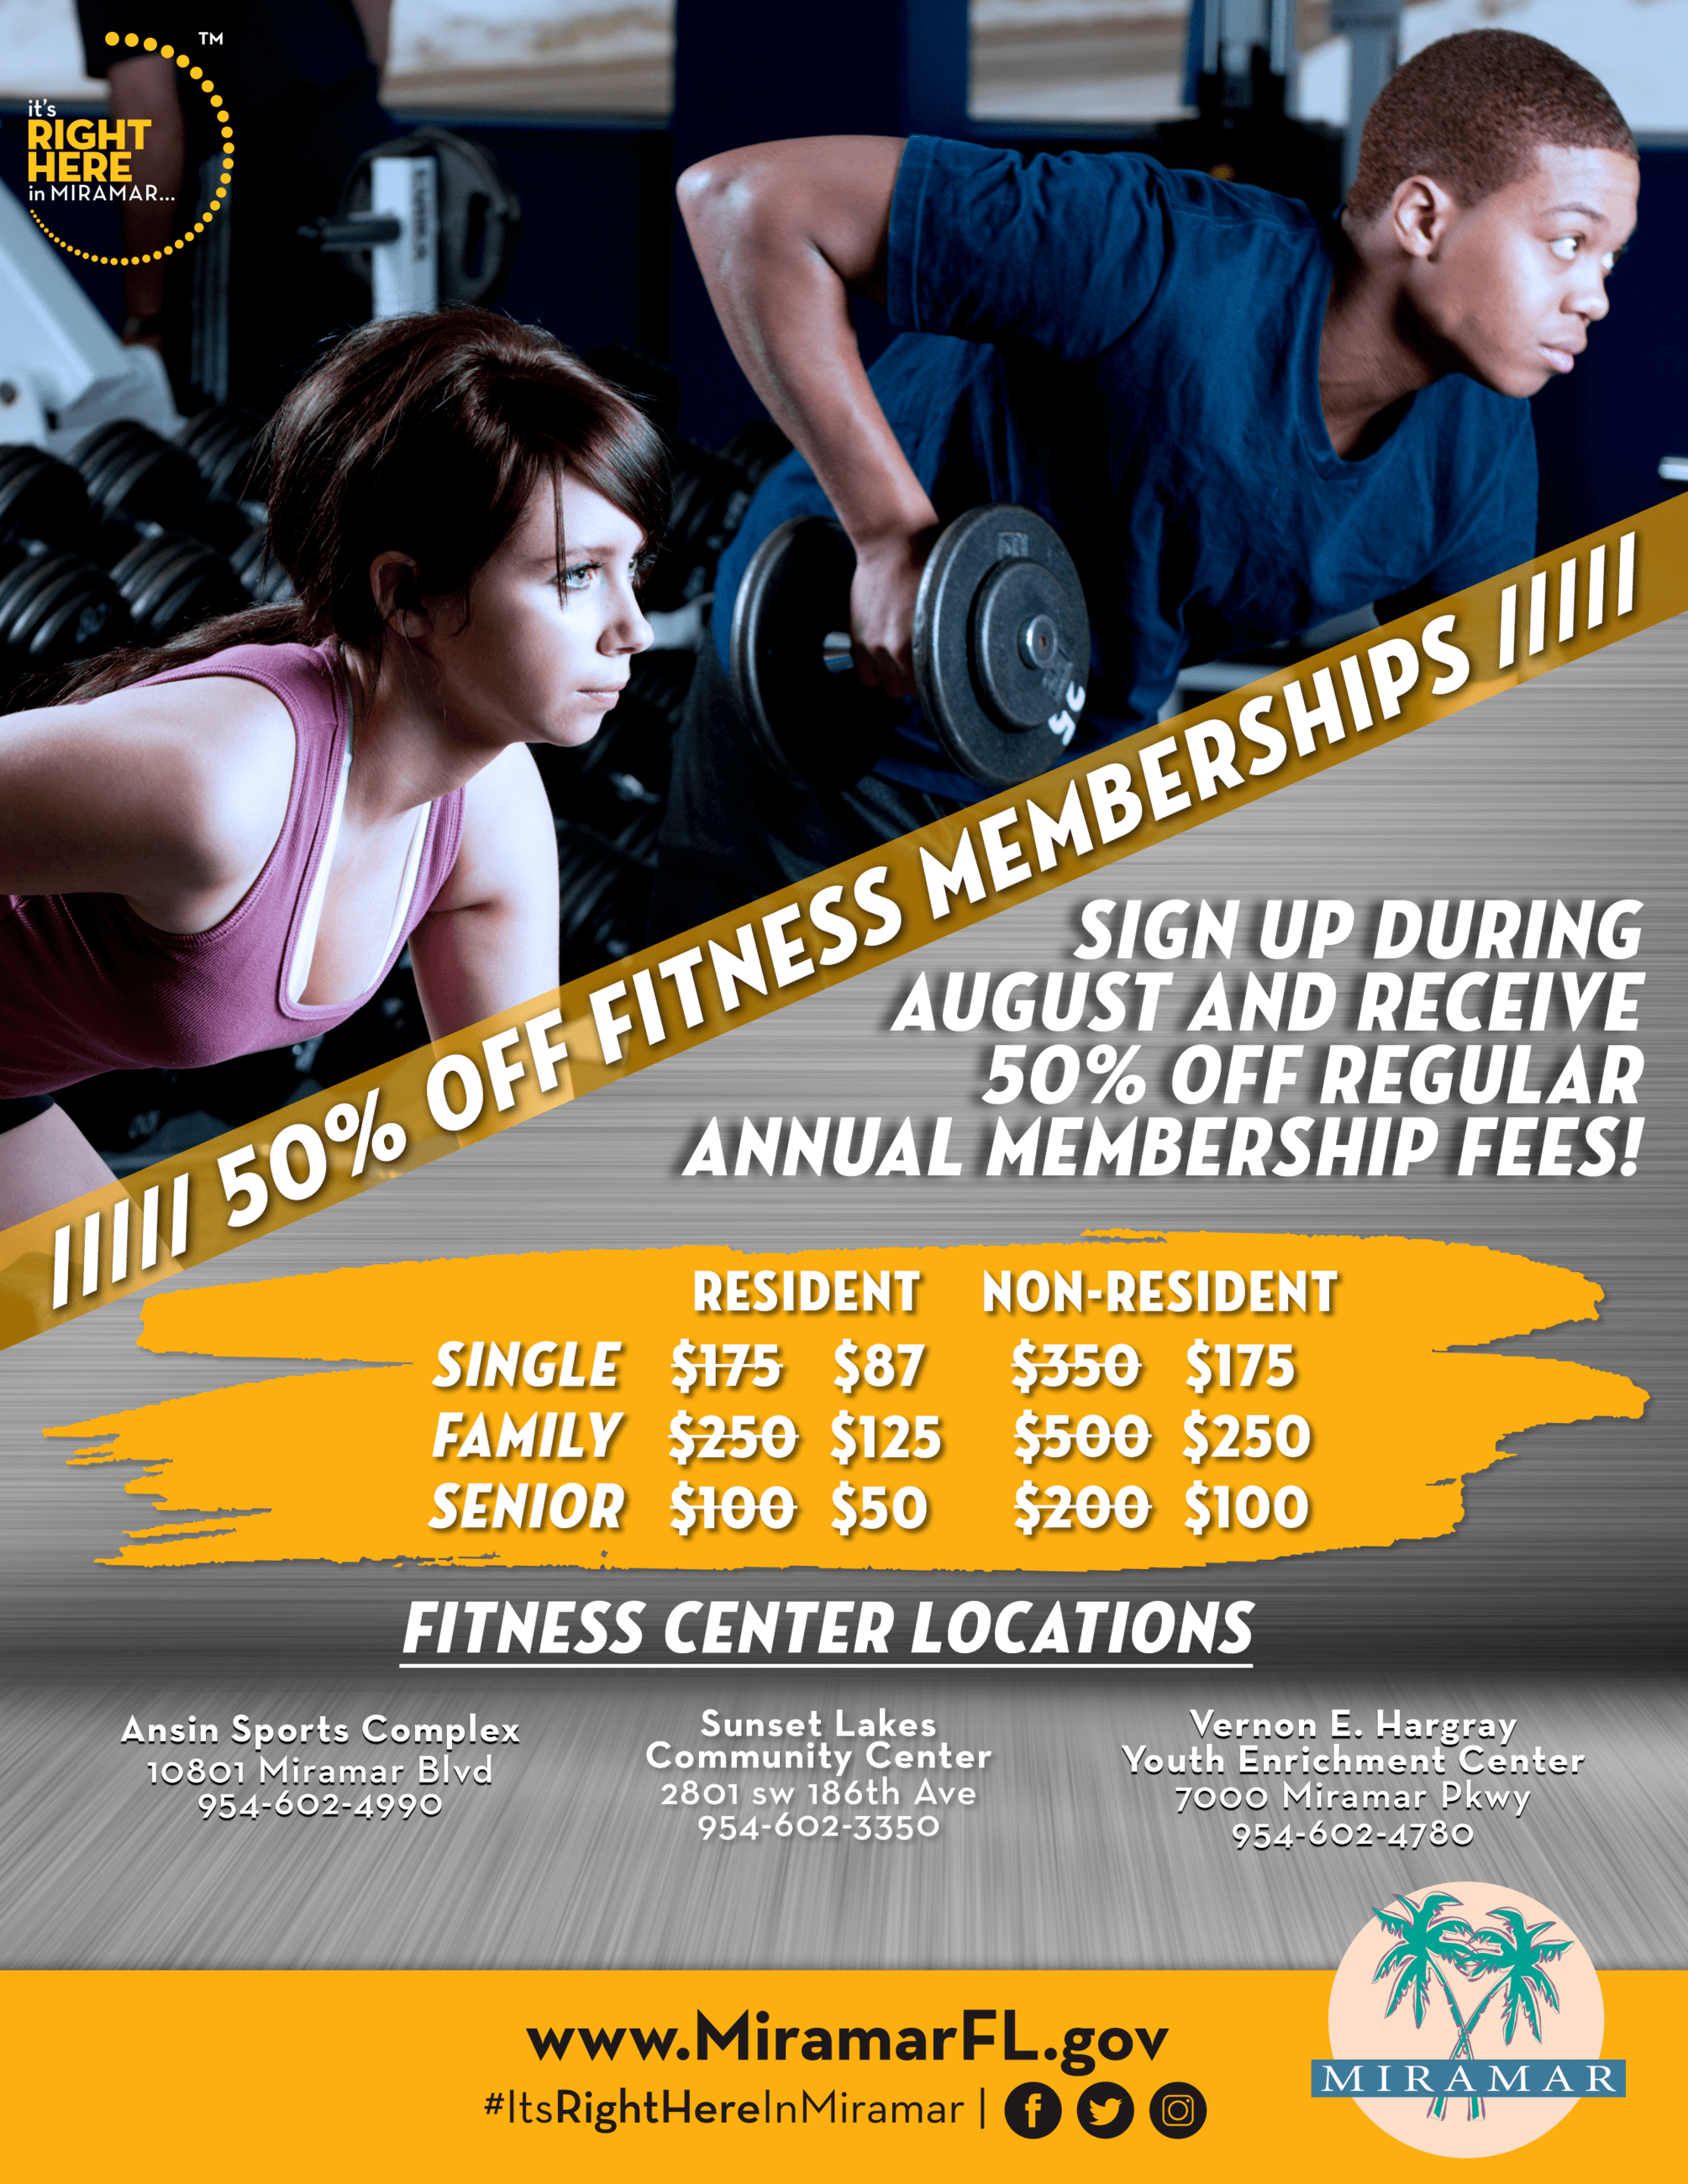 50% Off Fitness Center Annual Memberships